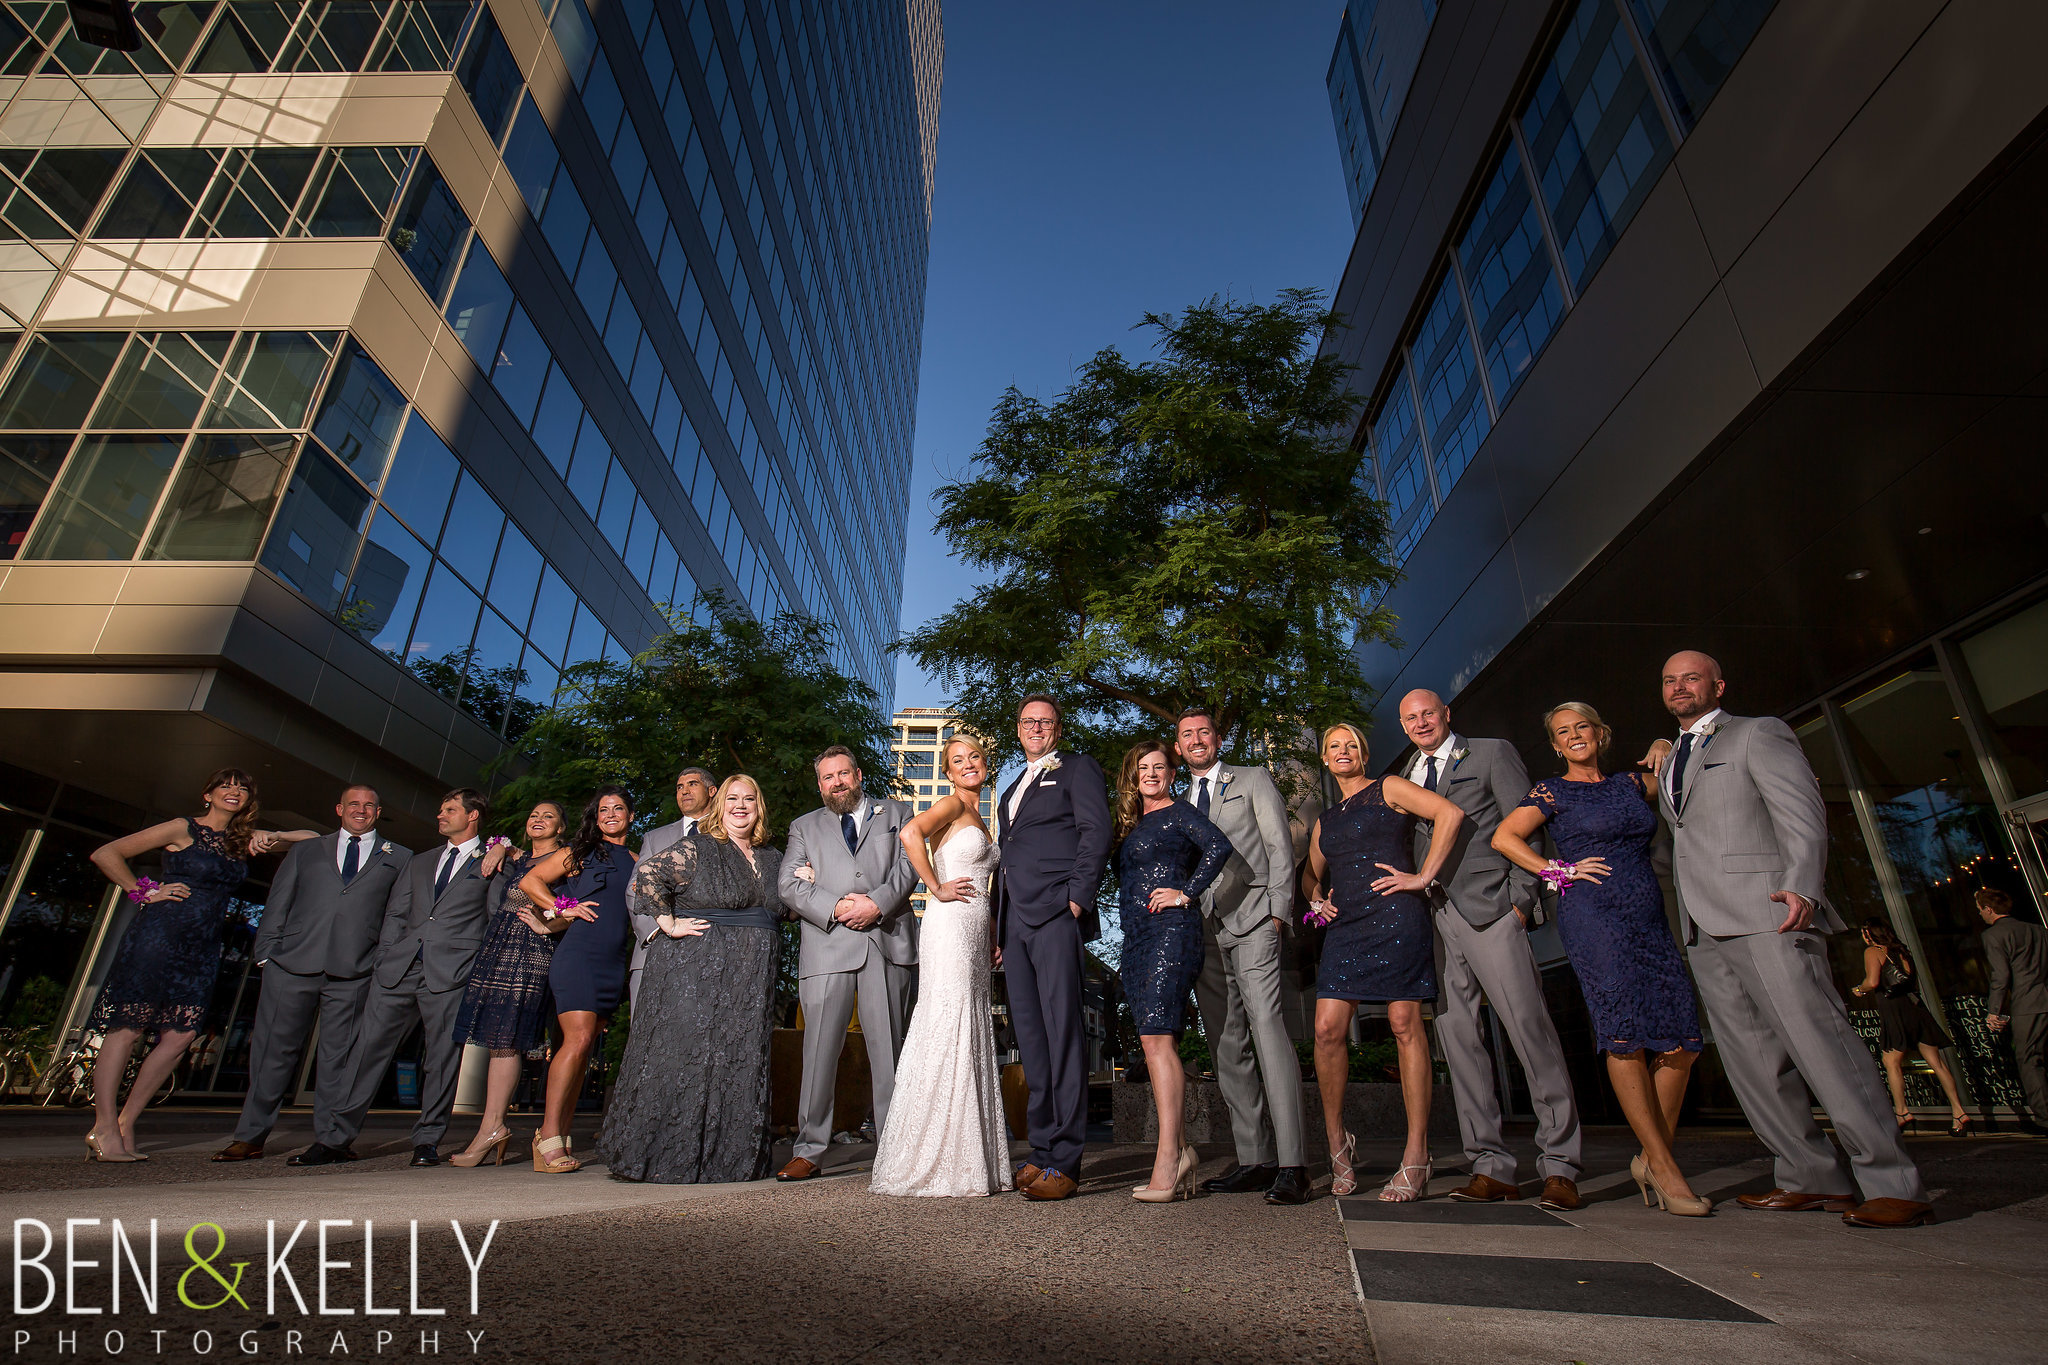 Photo by Ben & Kelly Photography